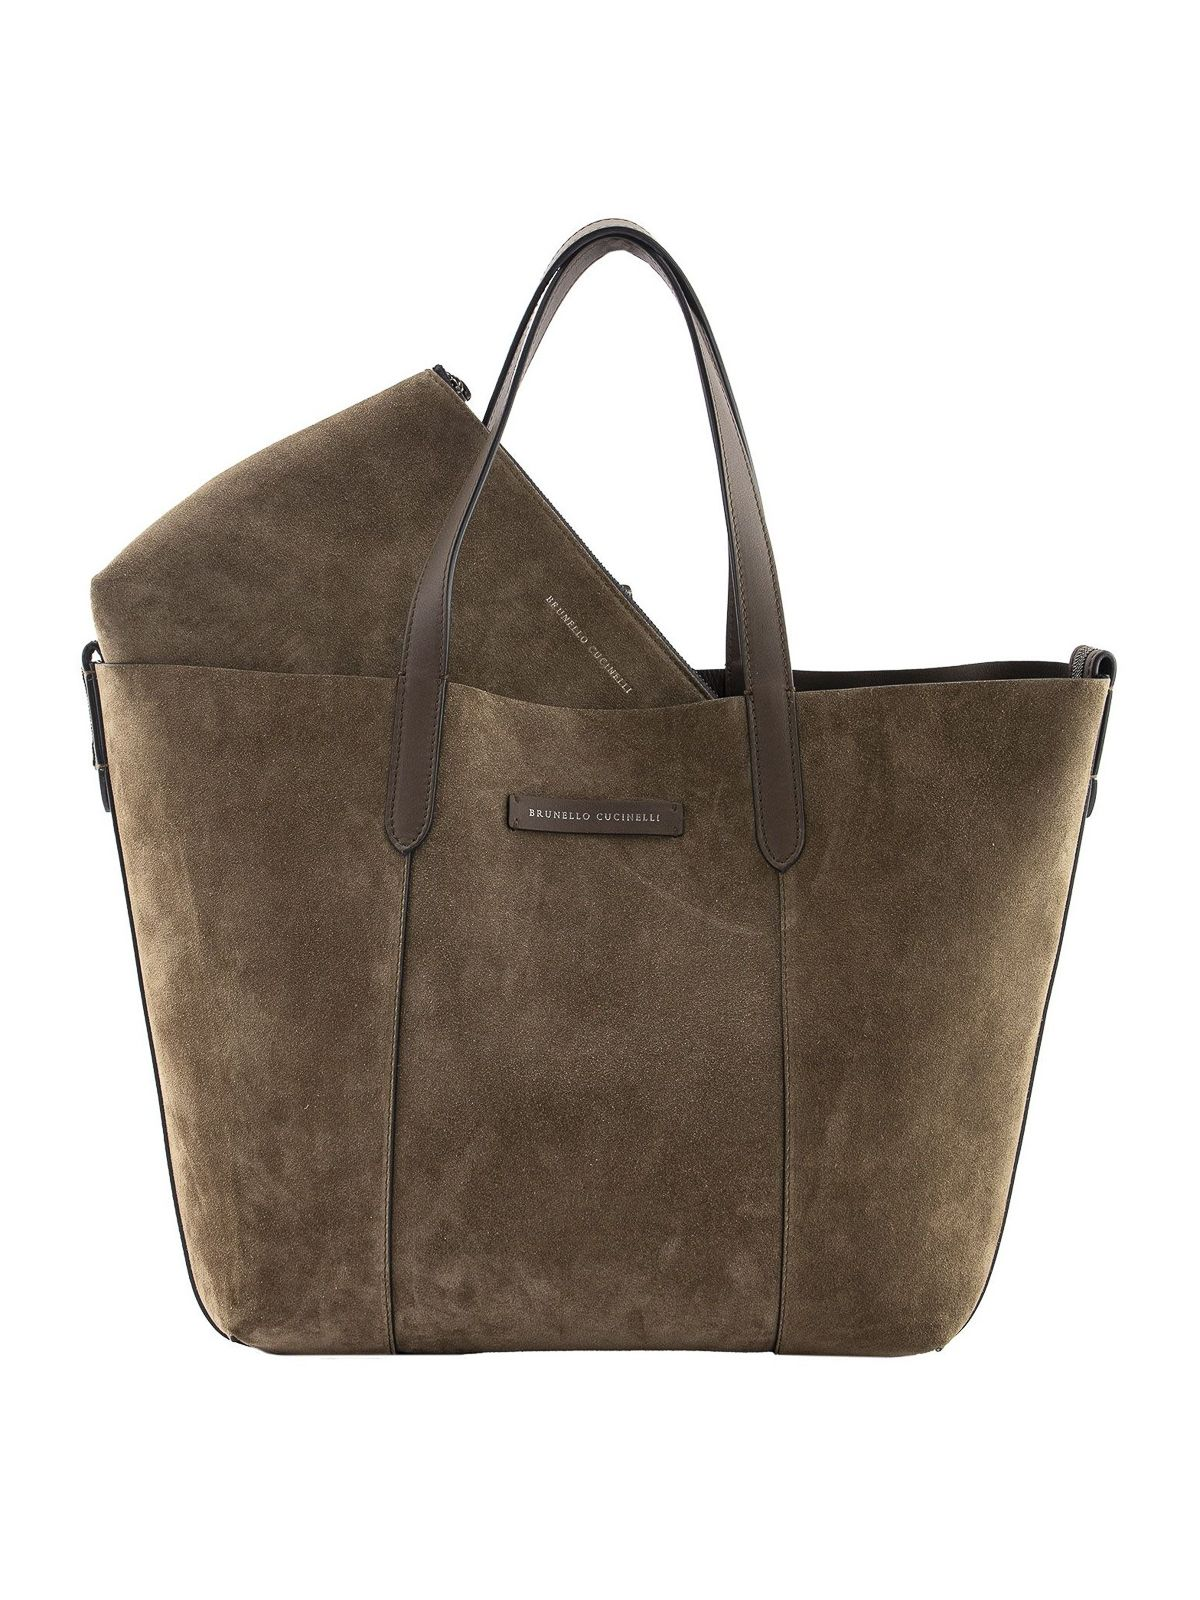 Brunello Cucinelli BRUNELLO CUCINELLI WOMEN'S BROWN SUEDE TOTE